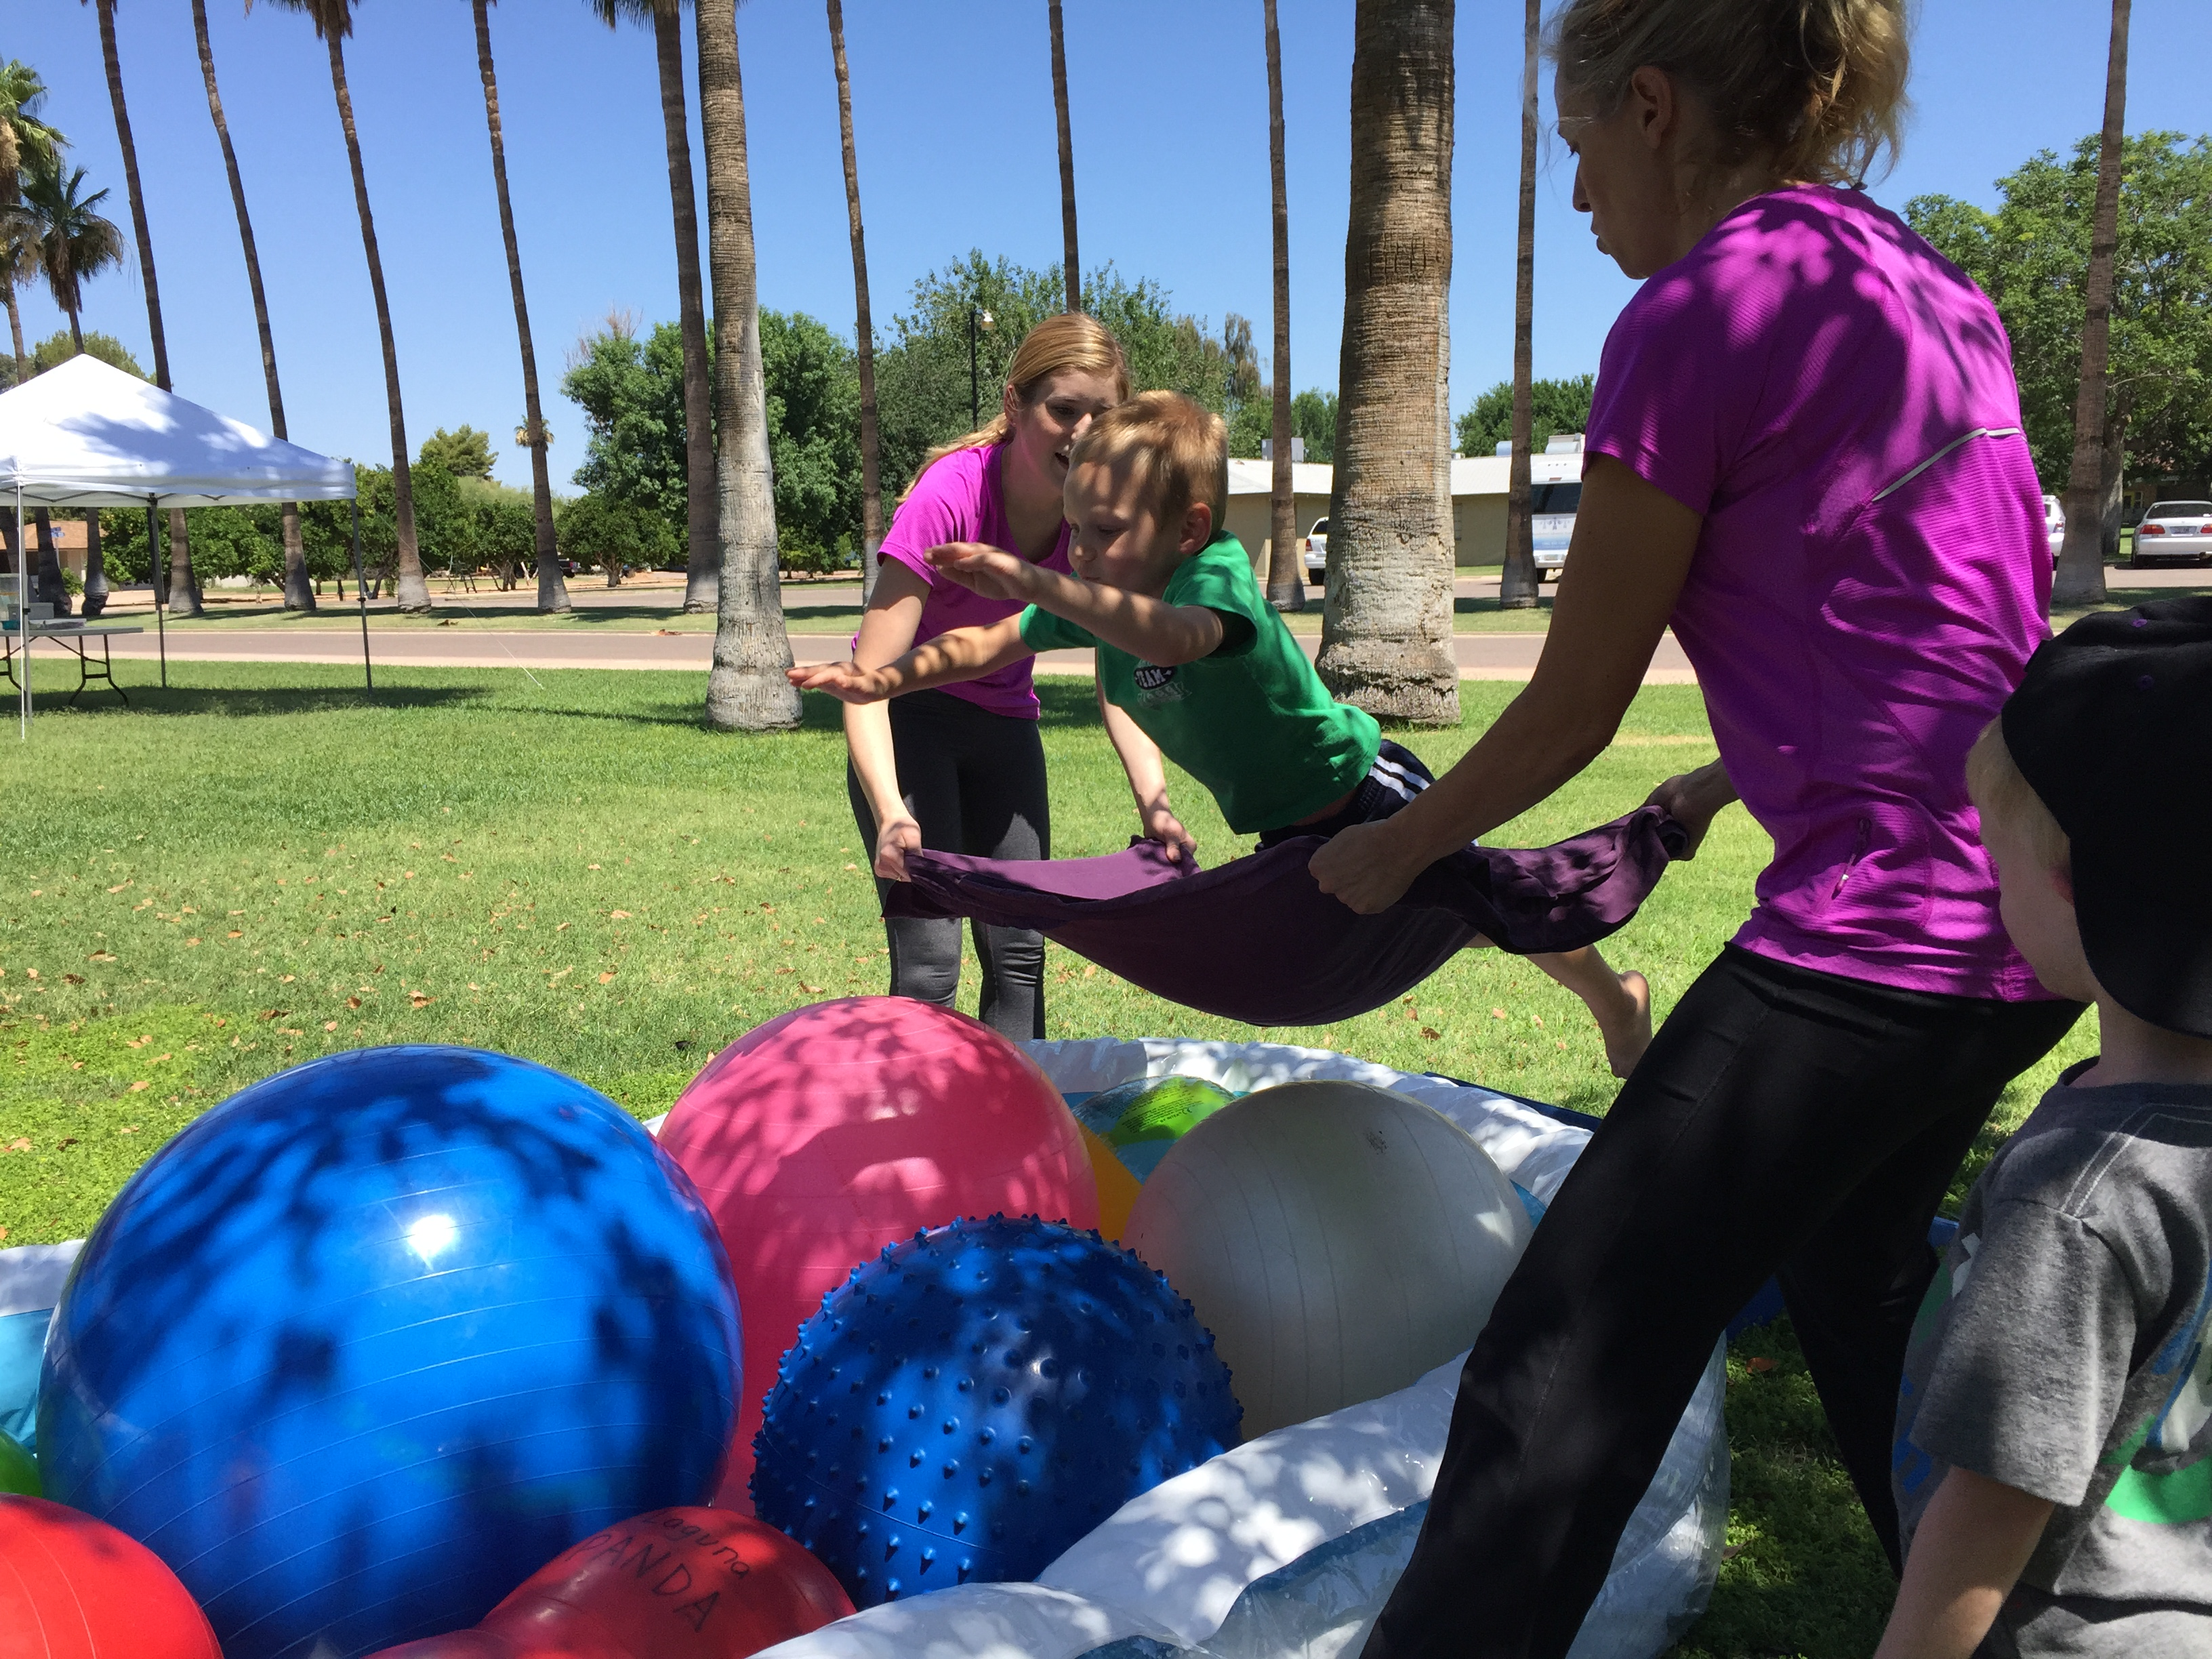 Kid jumping onto blanket that two women are holding over yoga balls